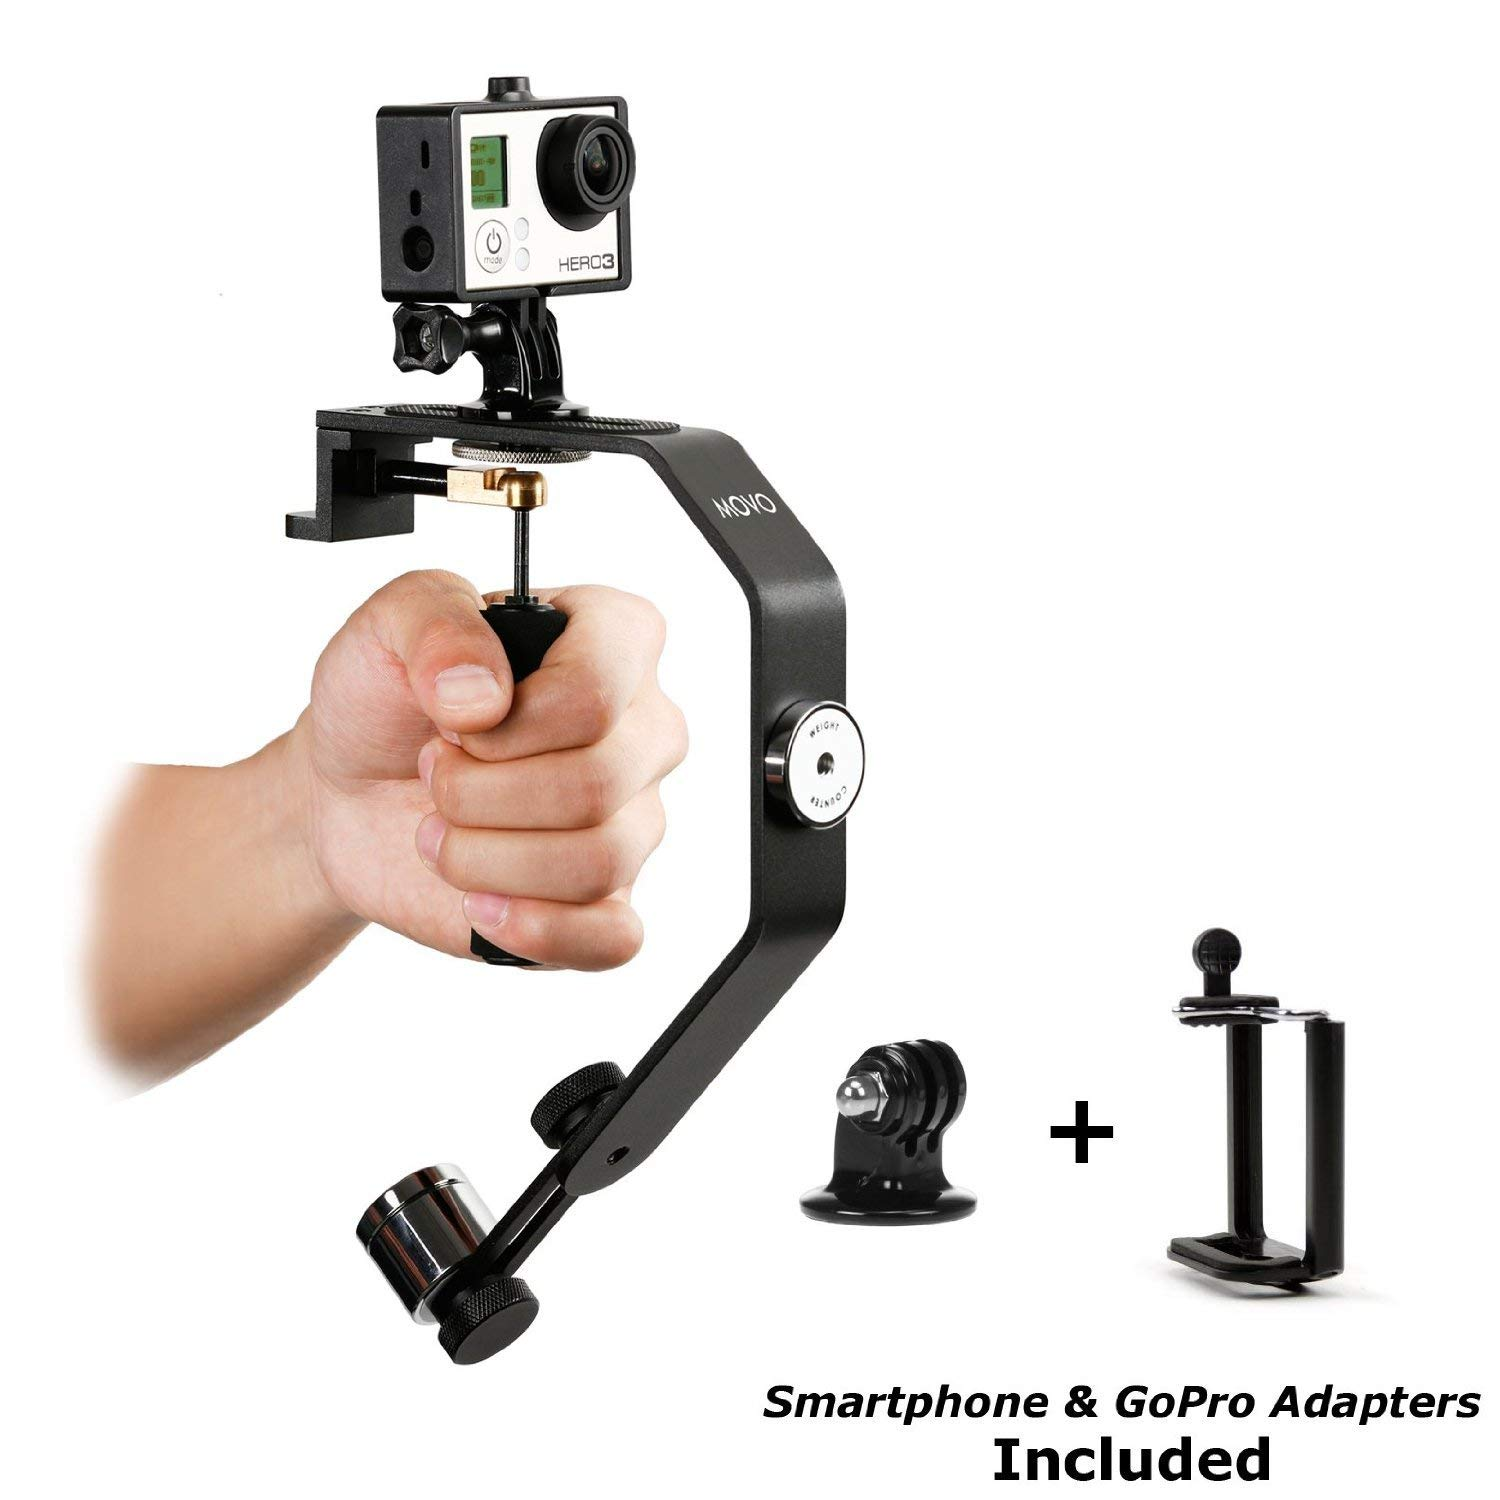 Movo Photo VS01-SP Sistema Estabilizador de Video Portátil con Contrapesos para GoPro HERO, HERO2, HERO3, HERO3+, Hero4 y Smartphones Apple iPhone 4, 4S, 5, 5S, 6, Android Samsung Galaxy S3, S4, S5, S6